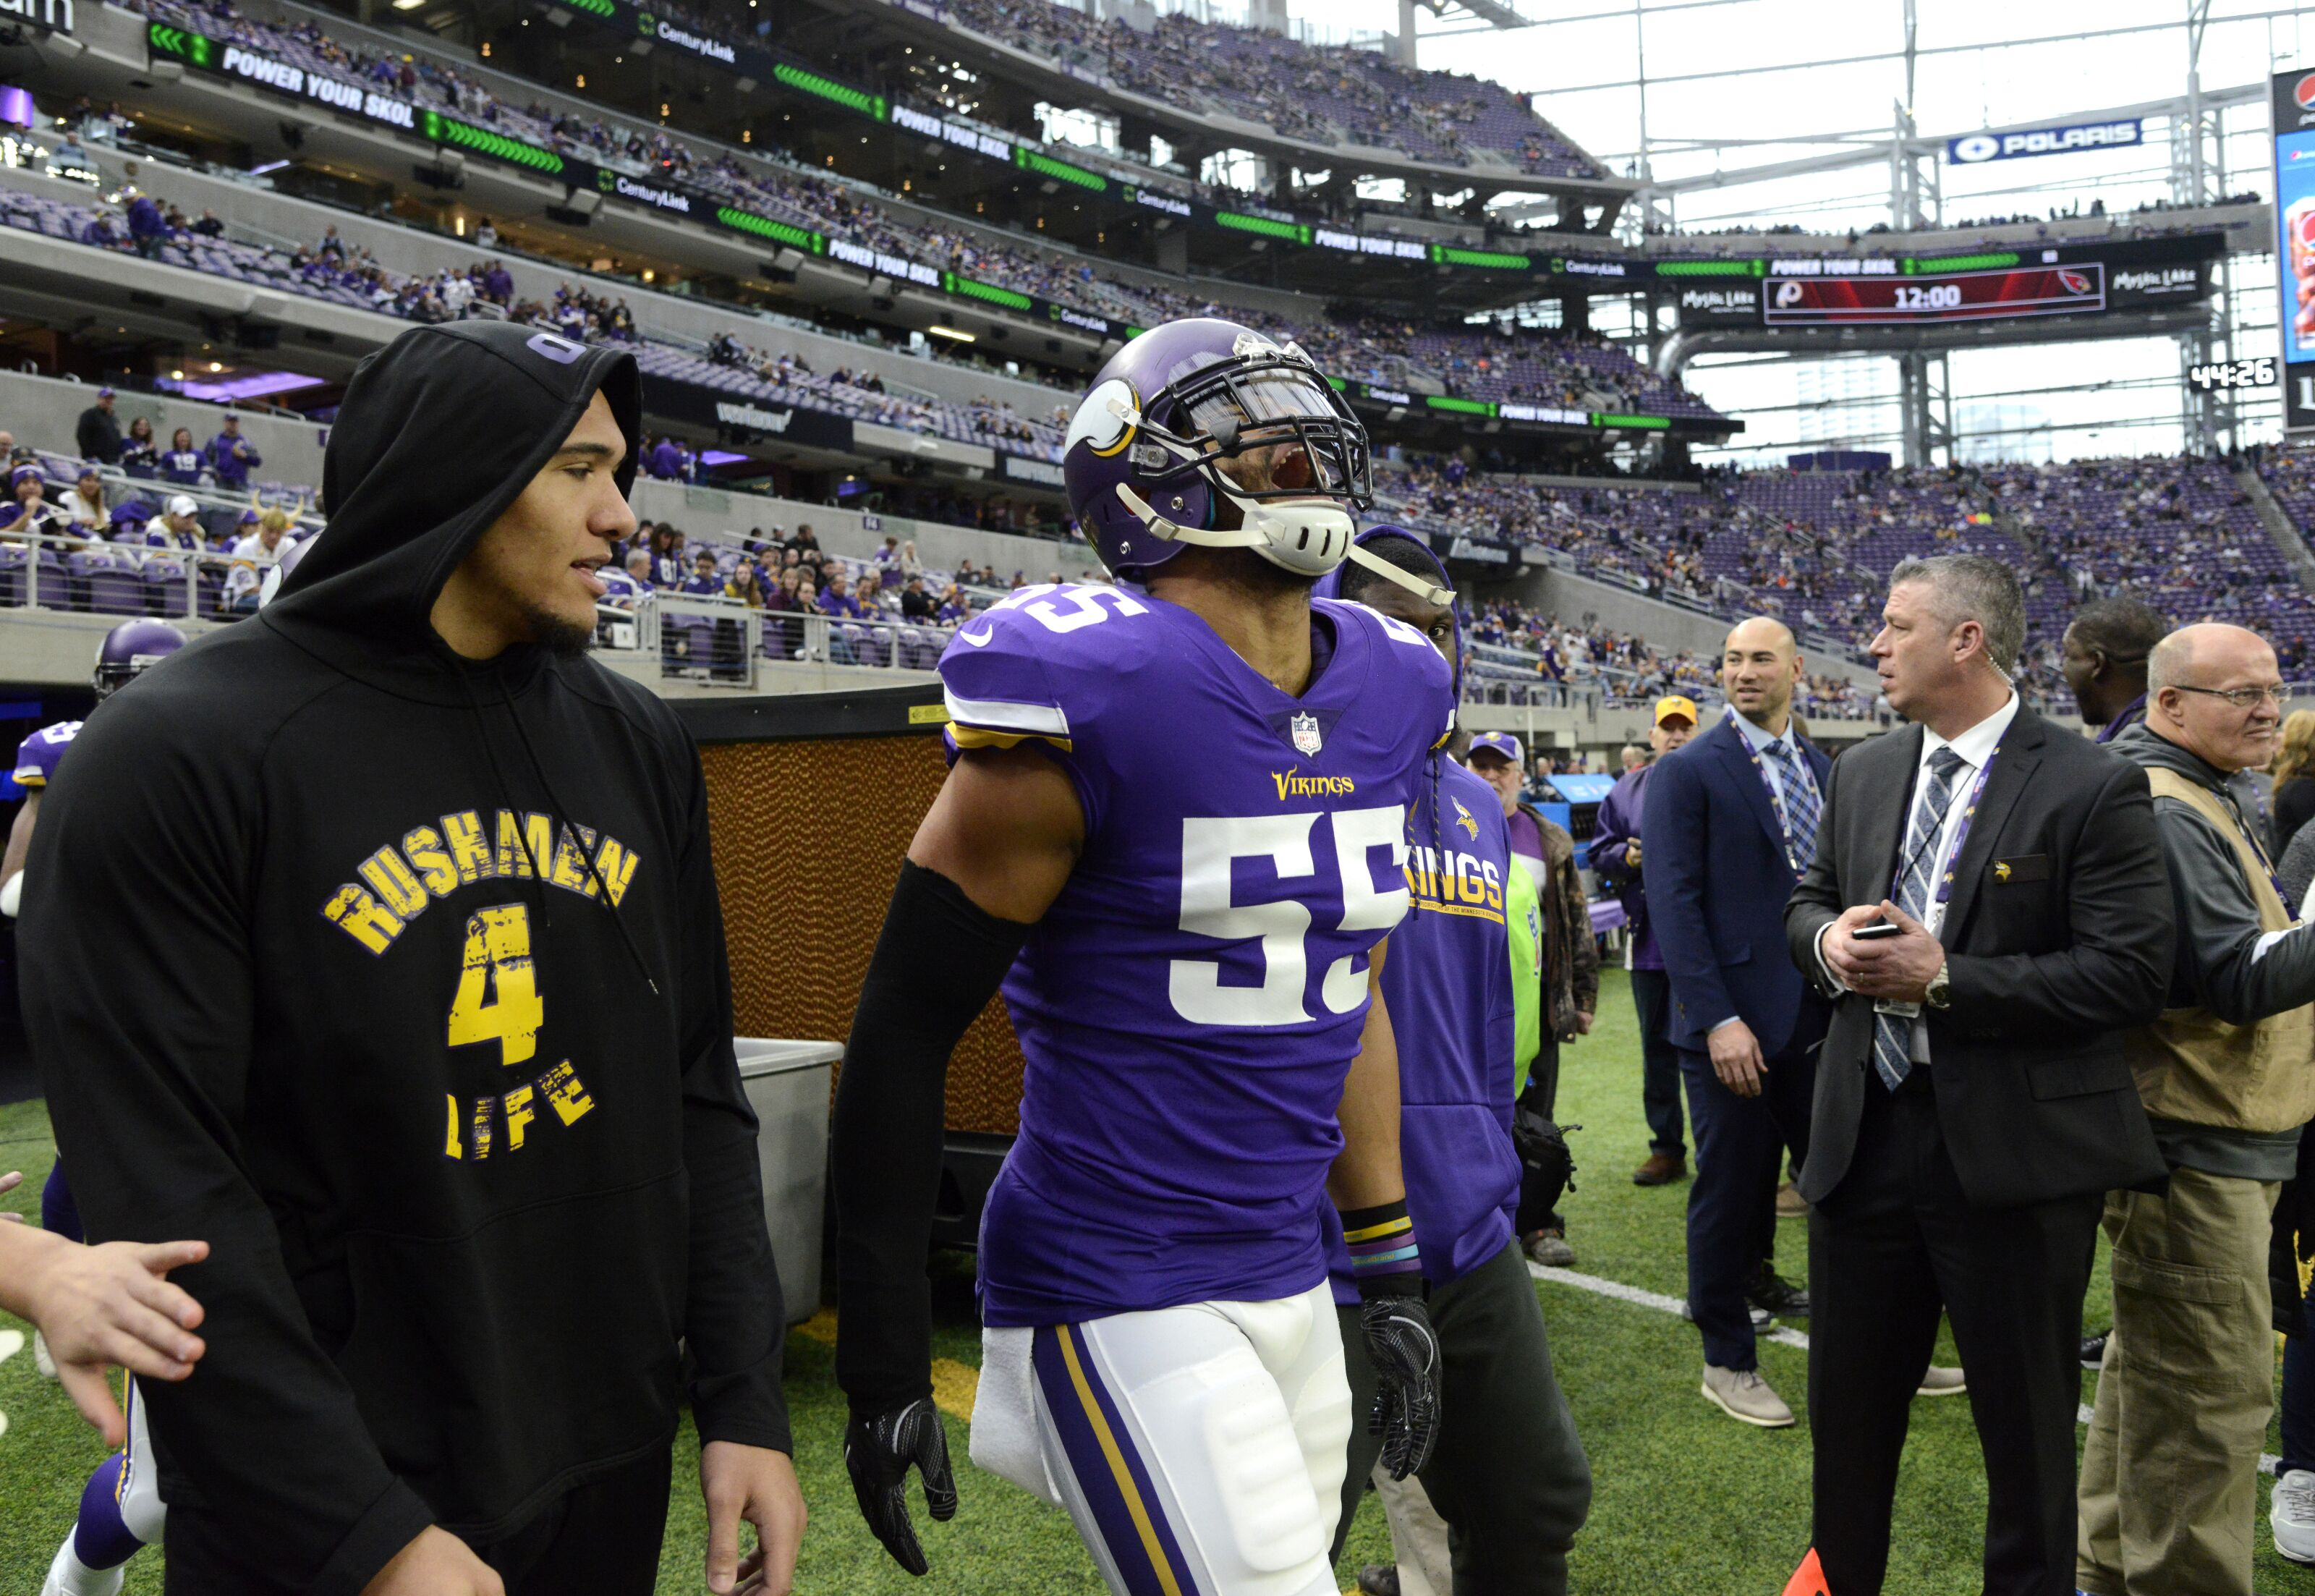 The Vikings should not use the franchise tag for the 2019 NFL season